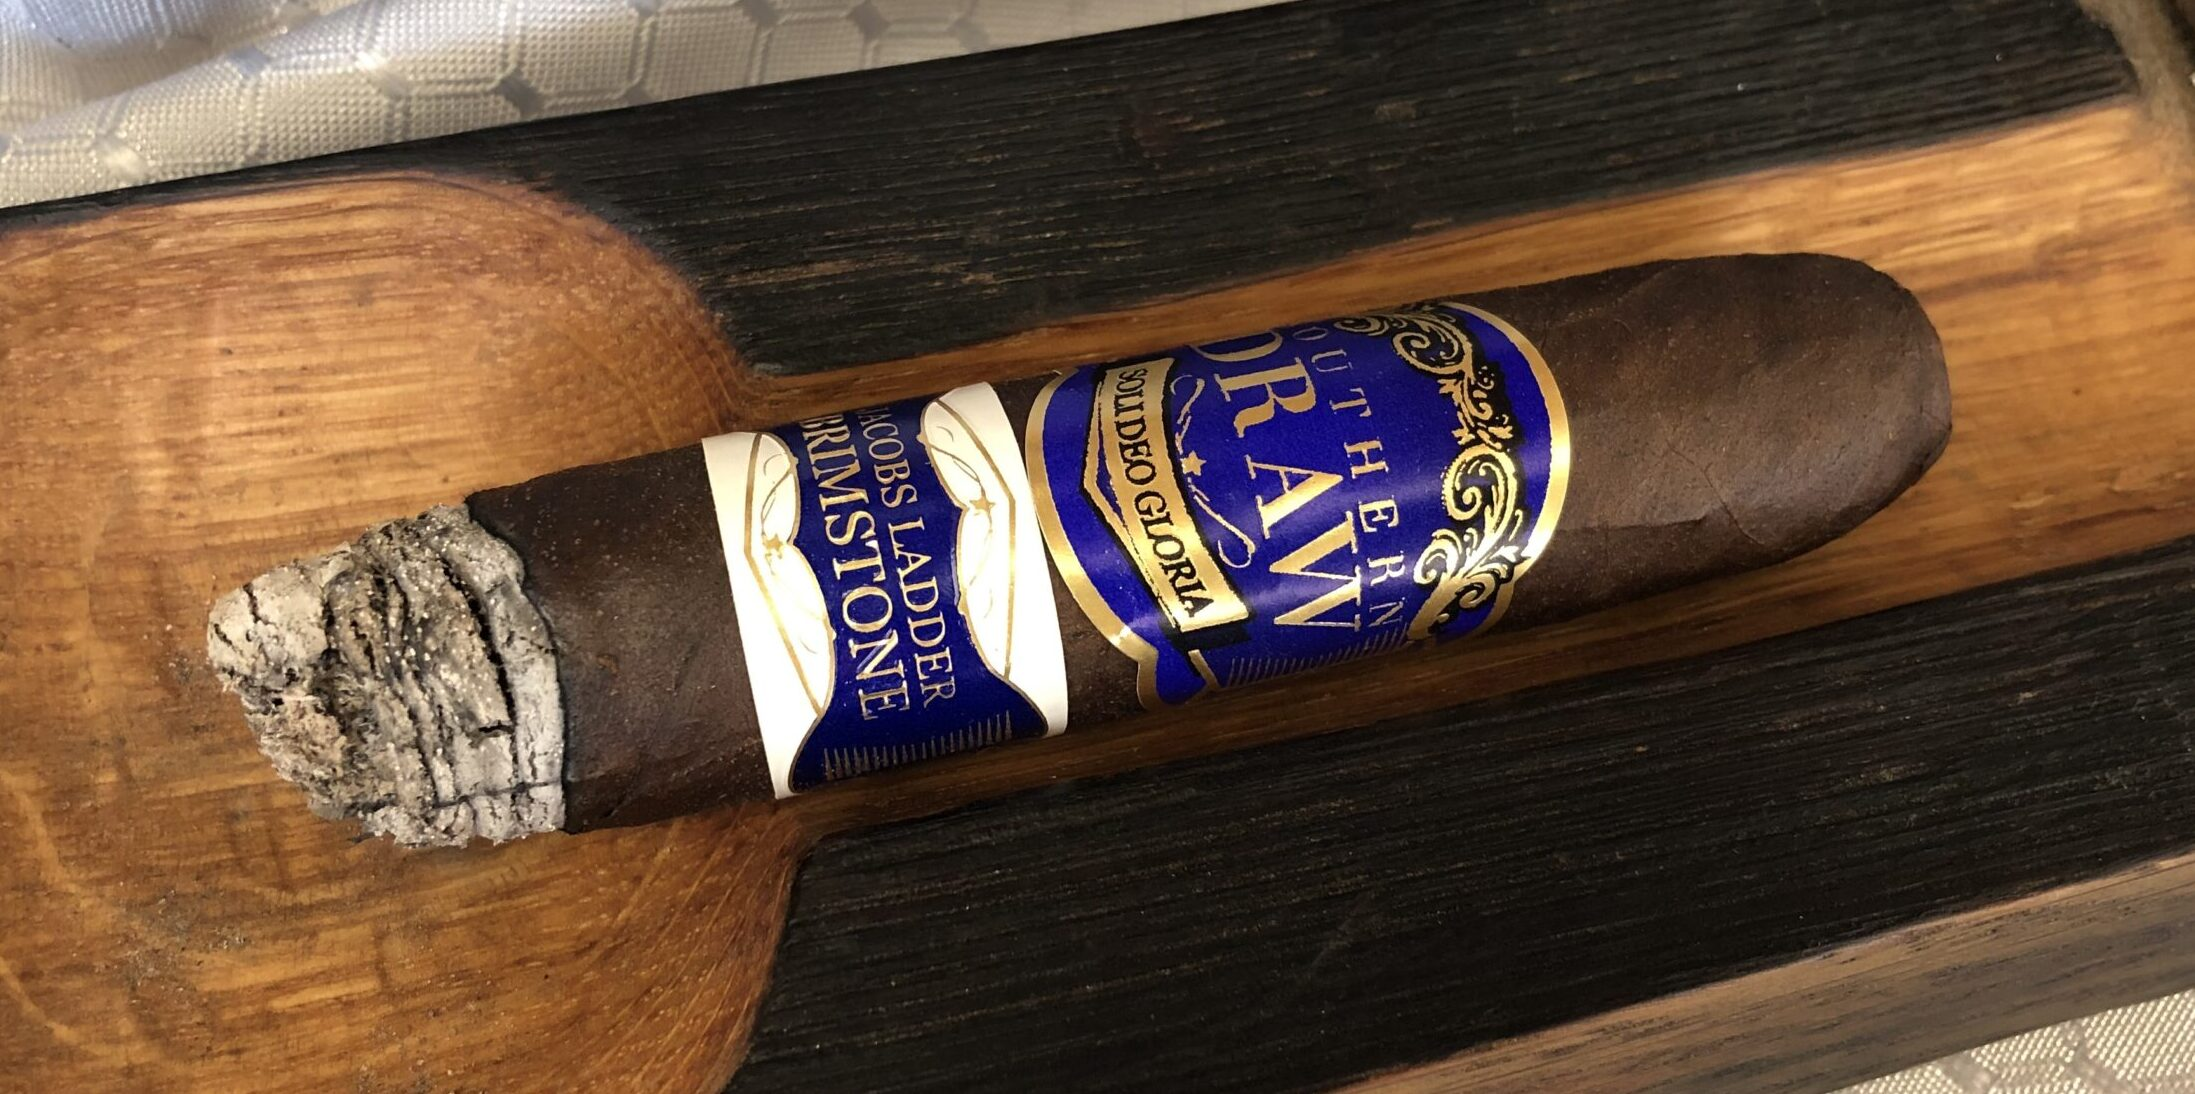 You are currently viewing Southern Draw Jacob's Ladder Brimstone Oblivion Perfecto Cigar Review